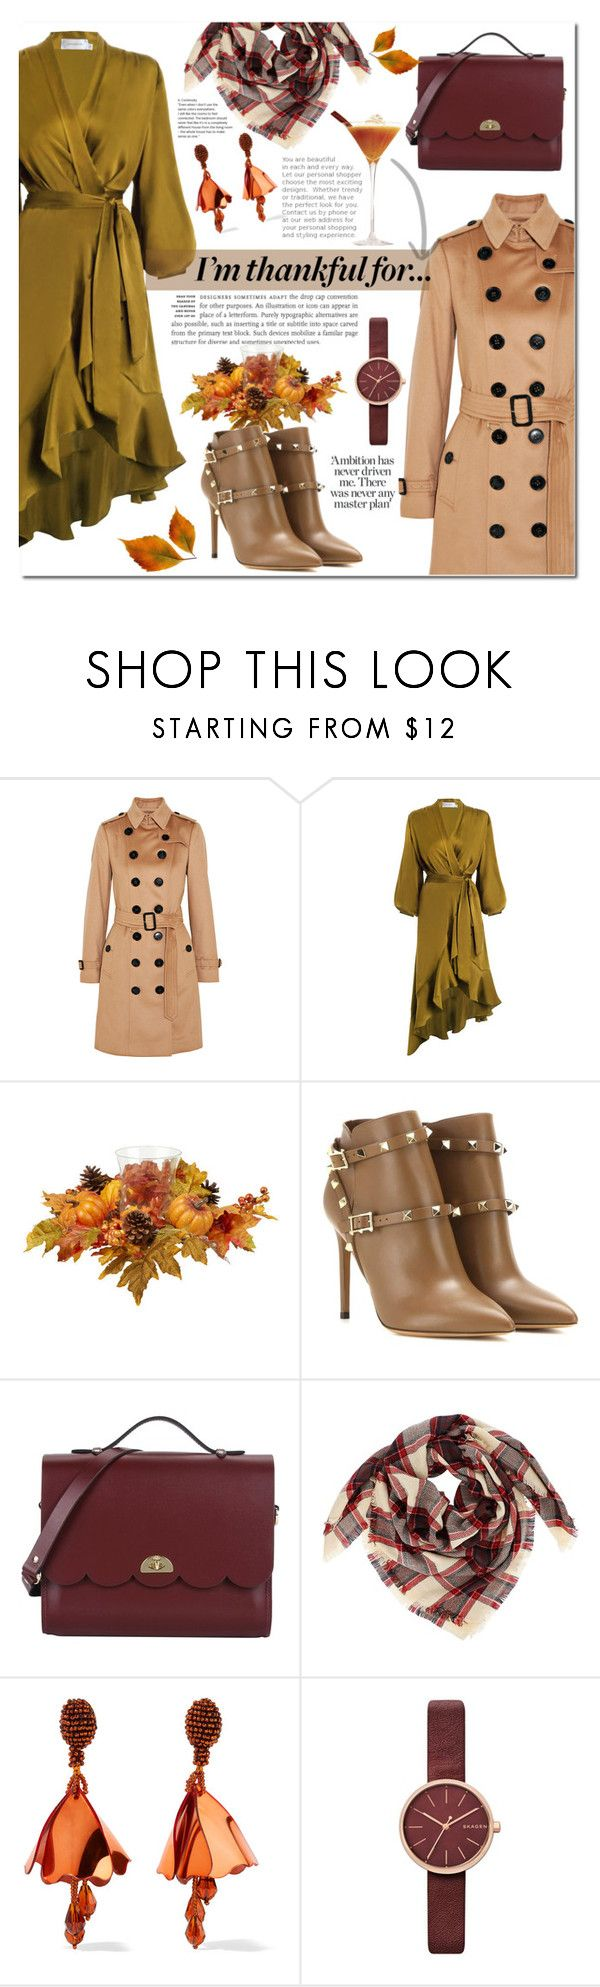 """""""I'm thankful for..."""" by mery90 on Polyvore featuring Burberry, Zimmermann, Valentino, The Cambridge Satchel Company, Oscar de la Renta, Skagen, thanksgiving, fallstyle and fall2017"""